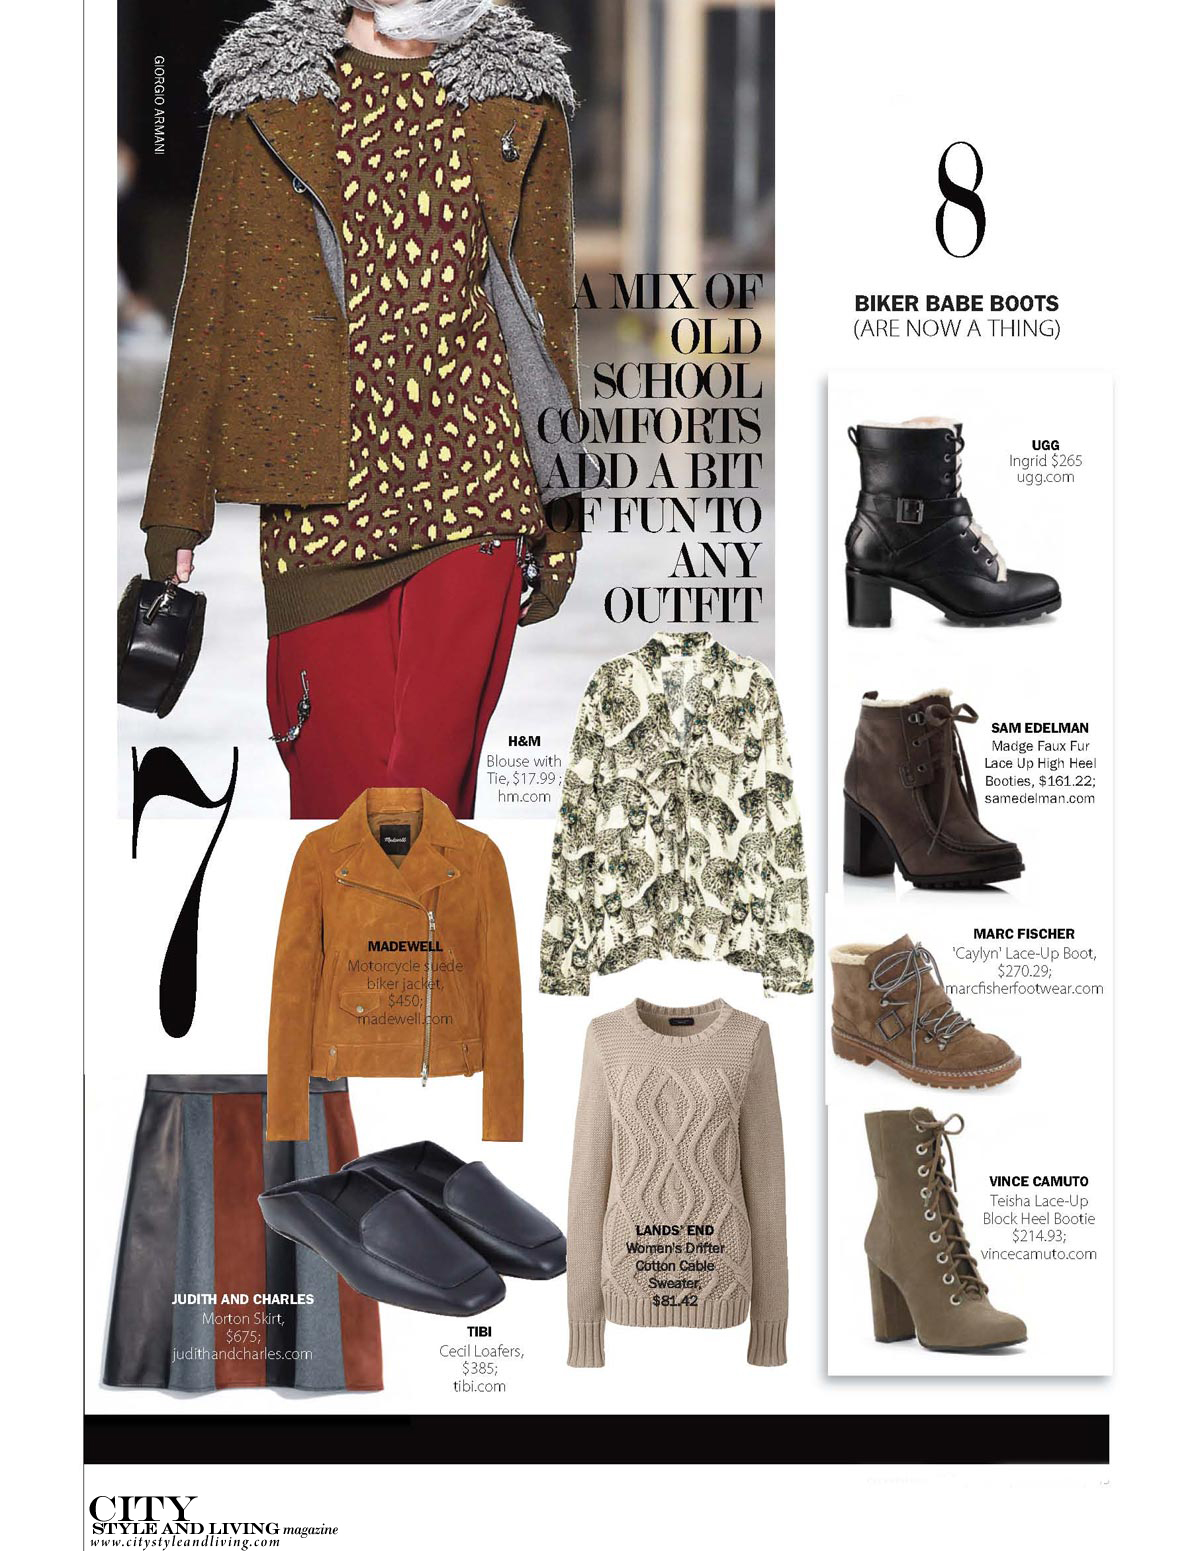 City Style and Living Magazine fall fashion trends 2016 4